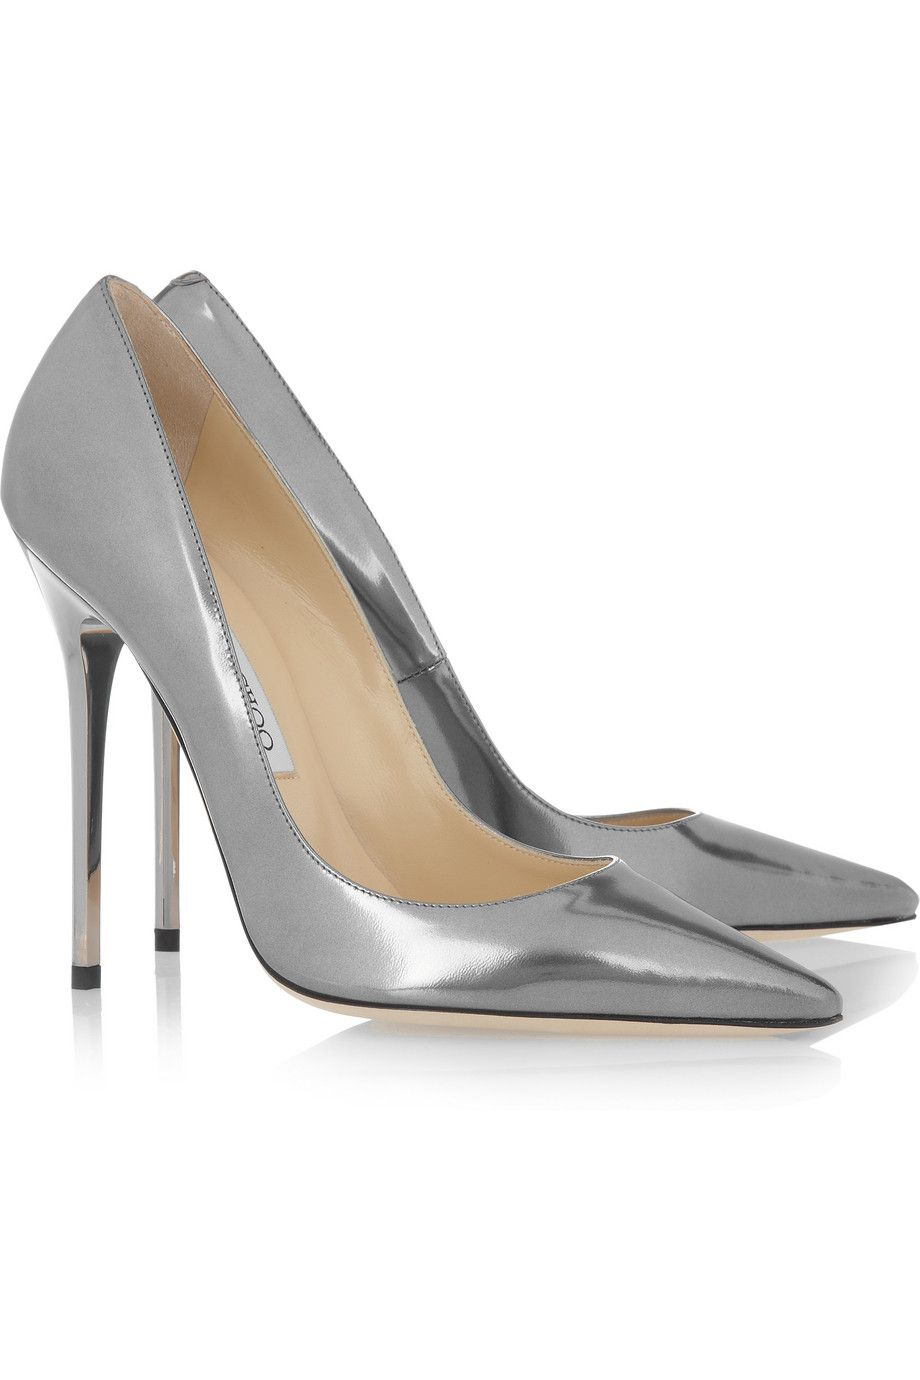 Jimmy Choo Metallic Leather Pumps outlet ebay collections online free shipping get to buy 7Q9F8OTOhY